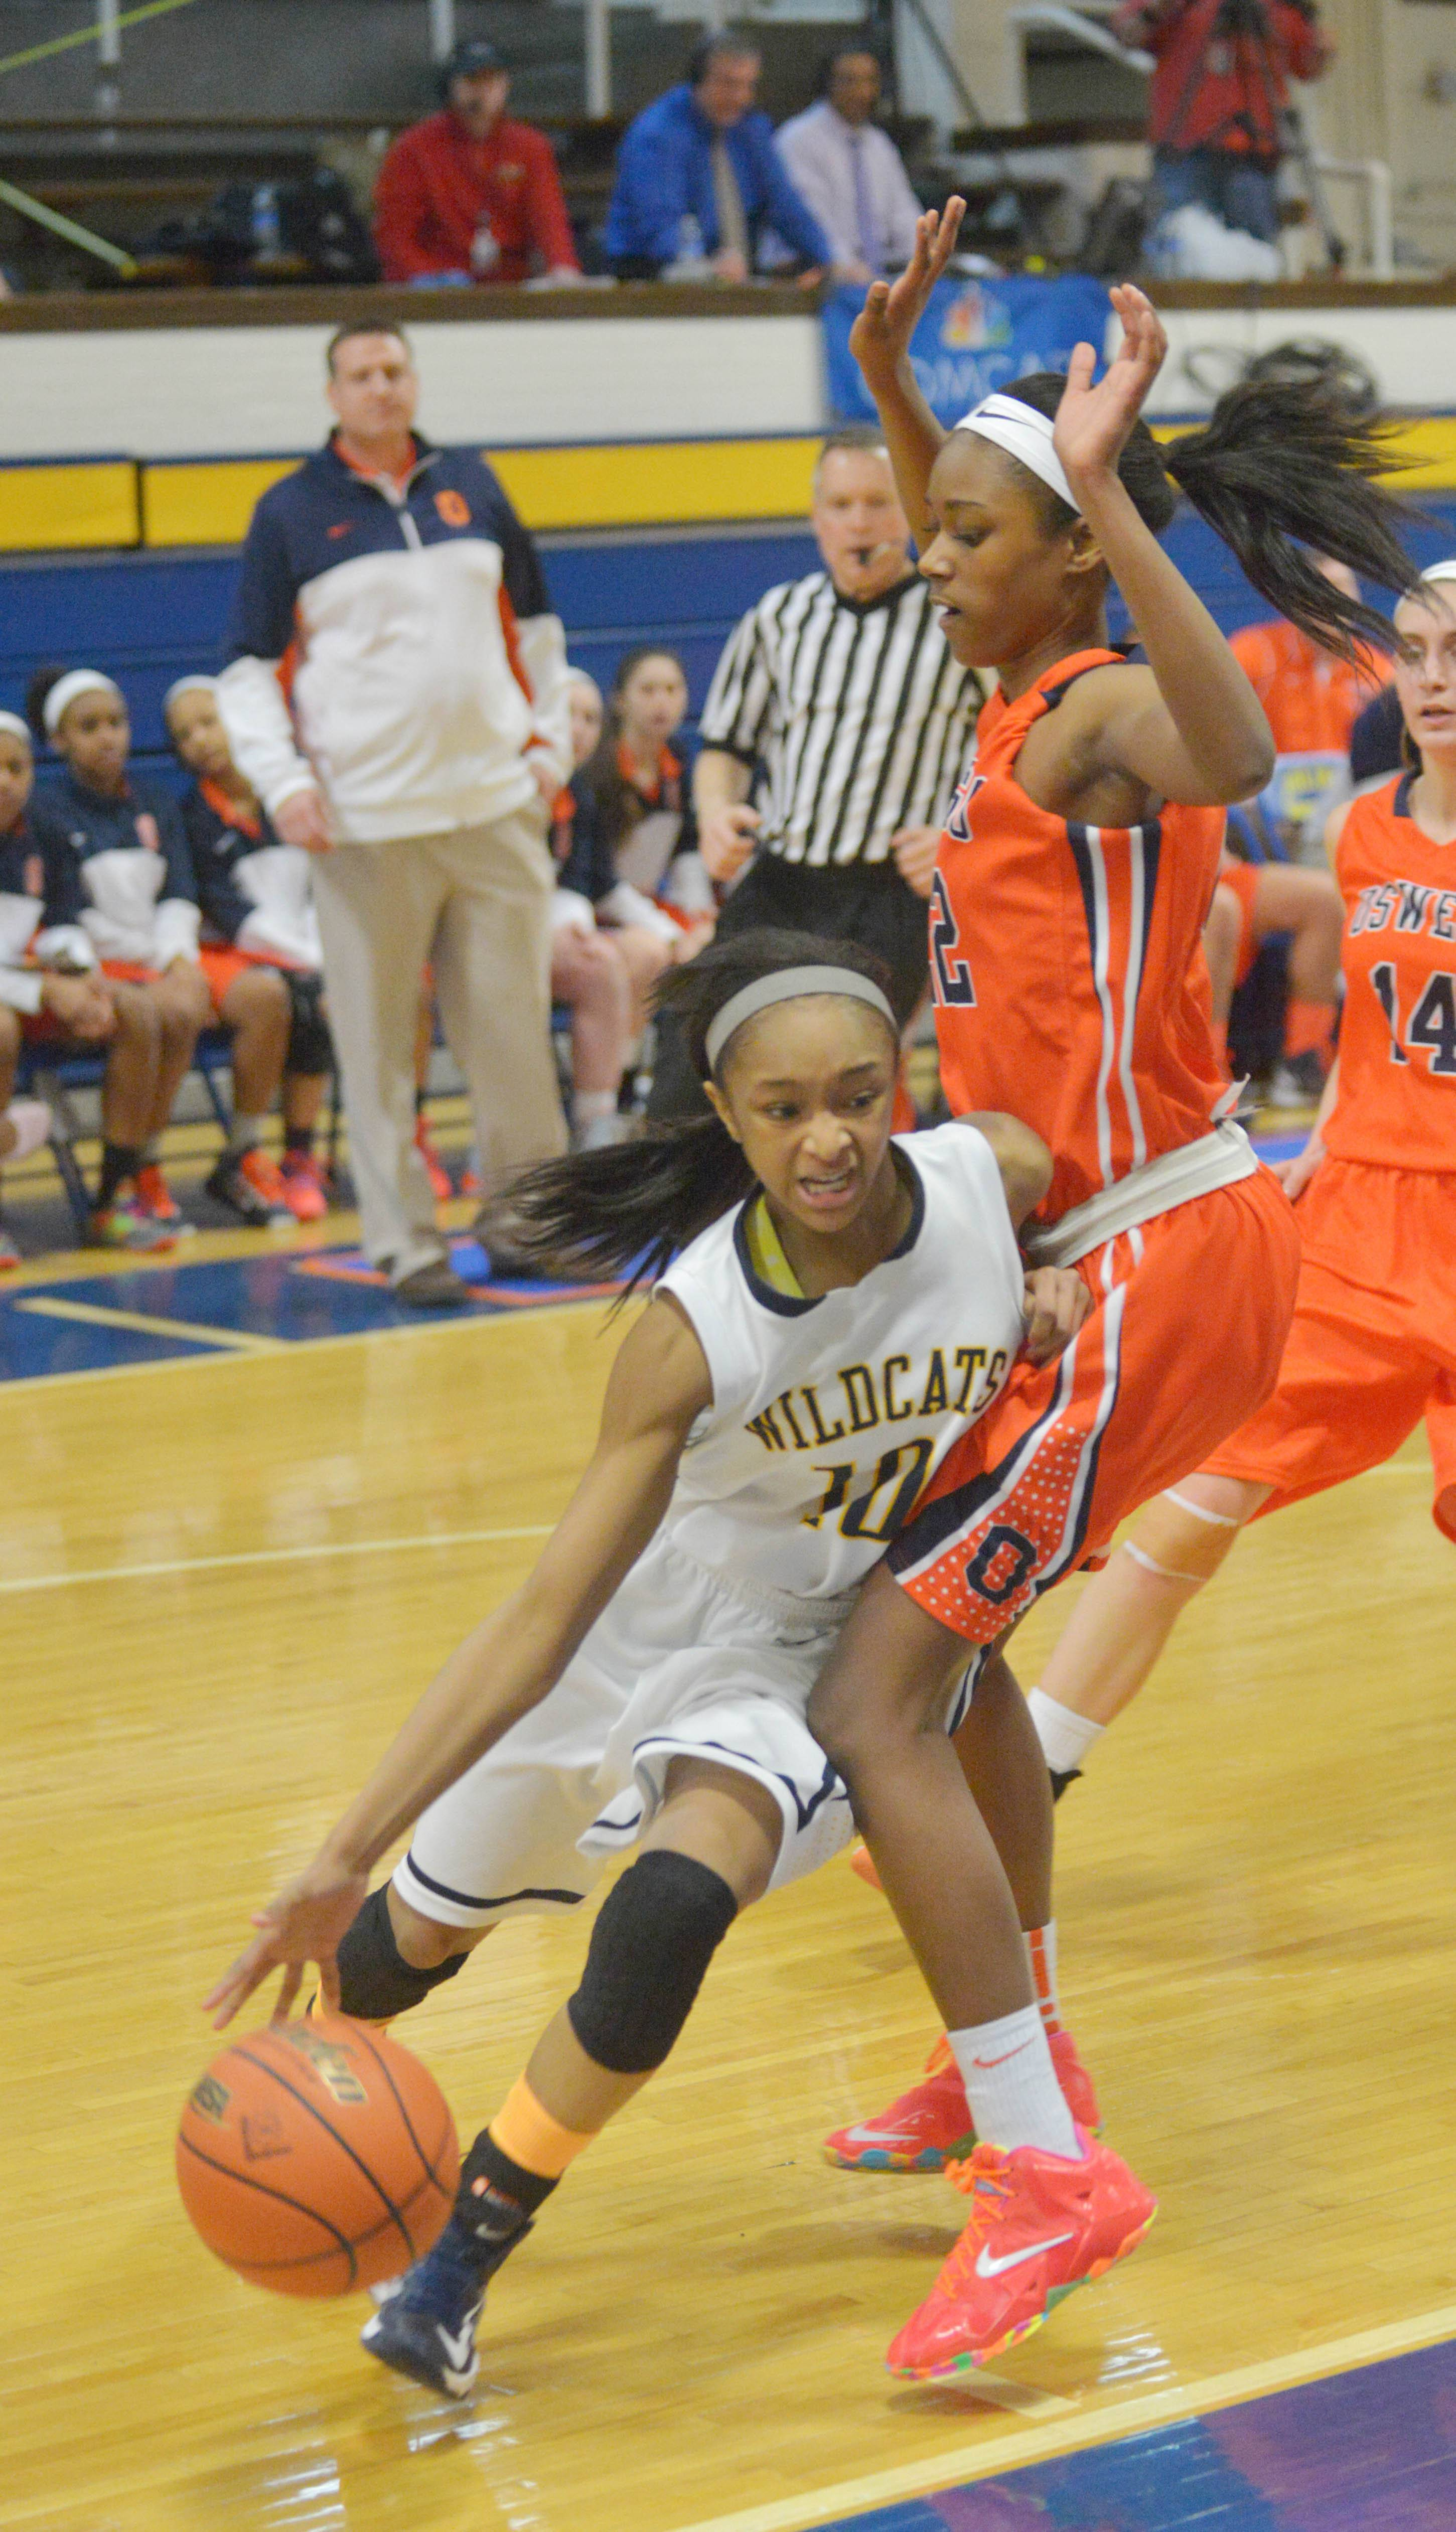 Myia Starks of Neuqua Valley drives the ball around Amri Wilder of Oswego.